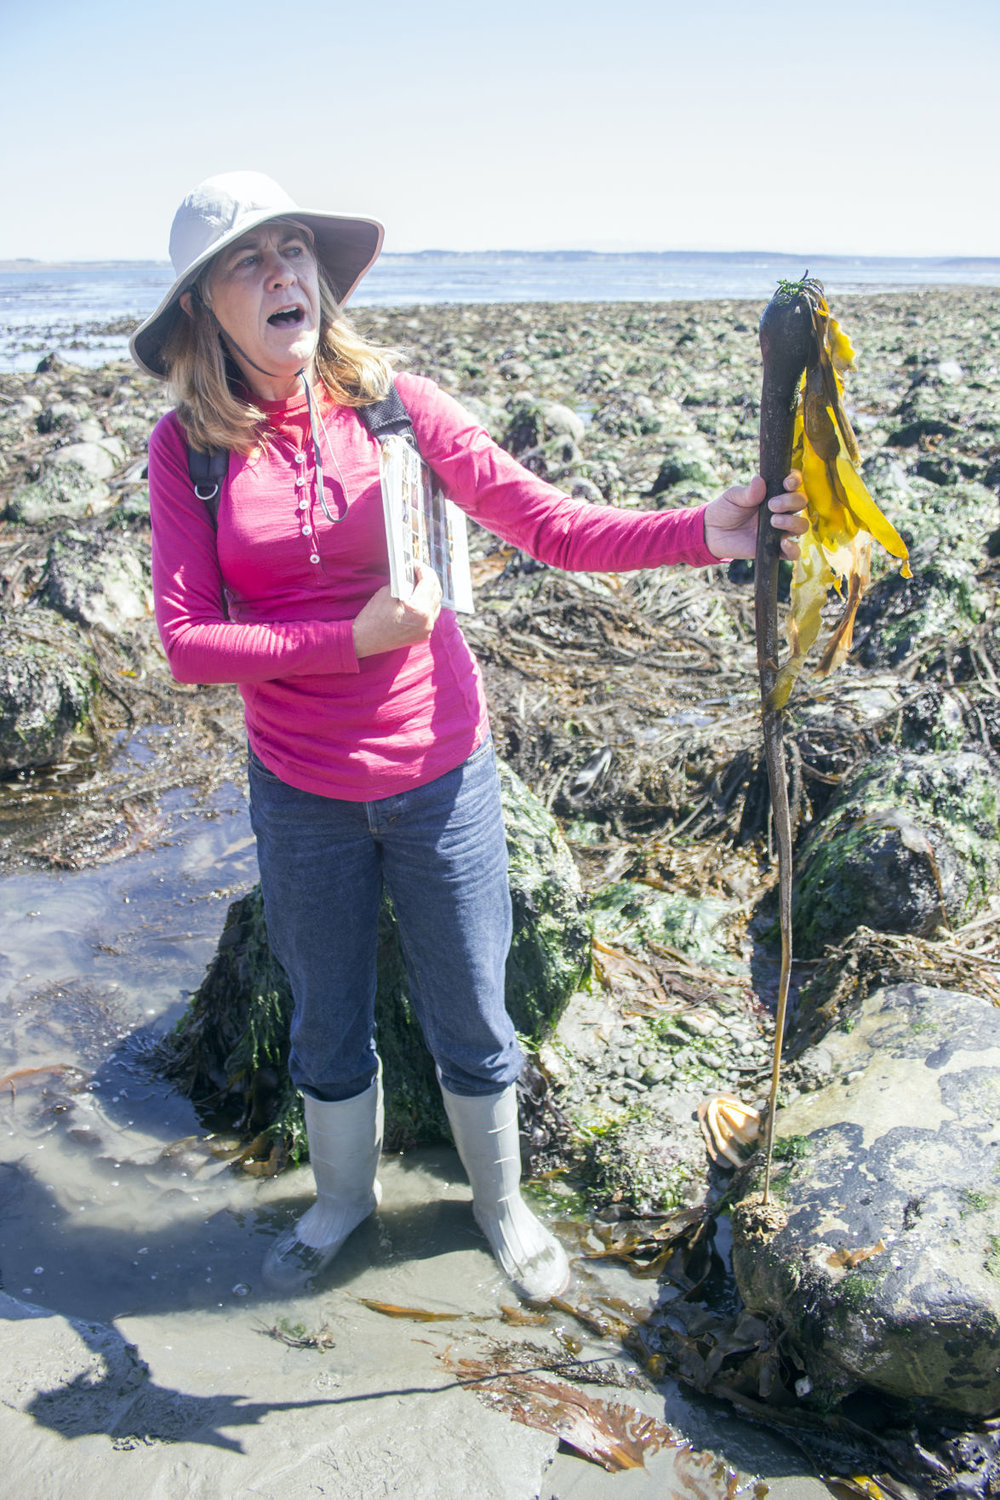 Wendy Feltham holds up a bull kelp, one of the hundreds of varieties of seaweed that can be found locally, during her July 15 intertidal walk just north of Battery Kinzie at Fort Worden State Park.